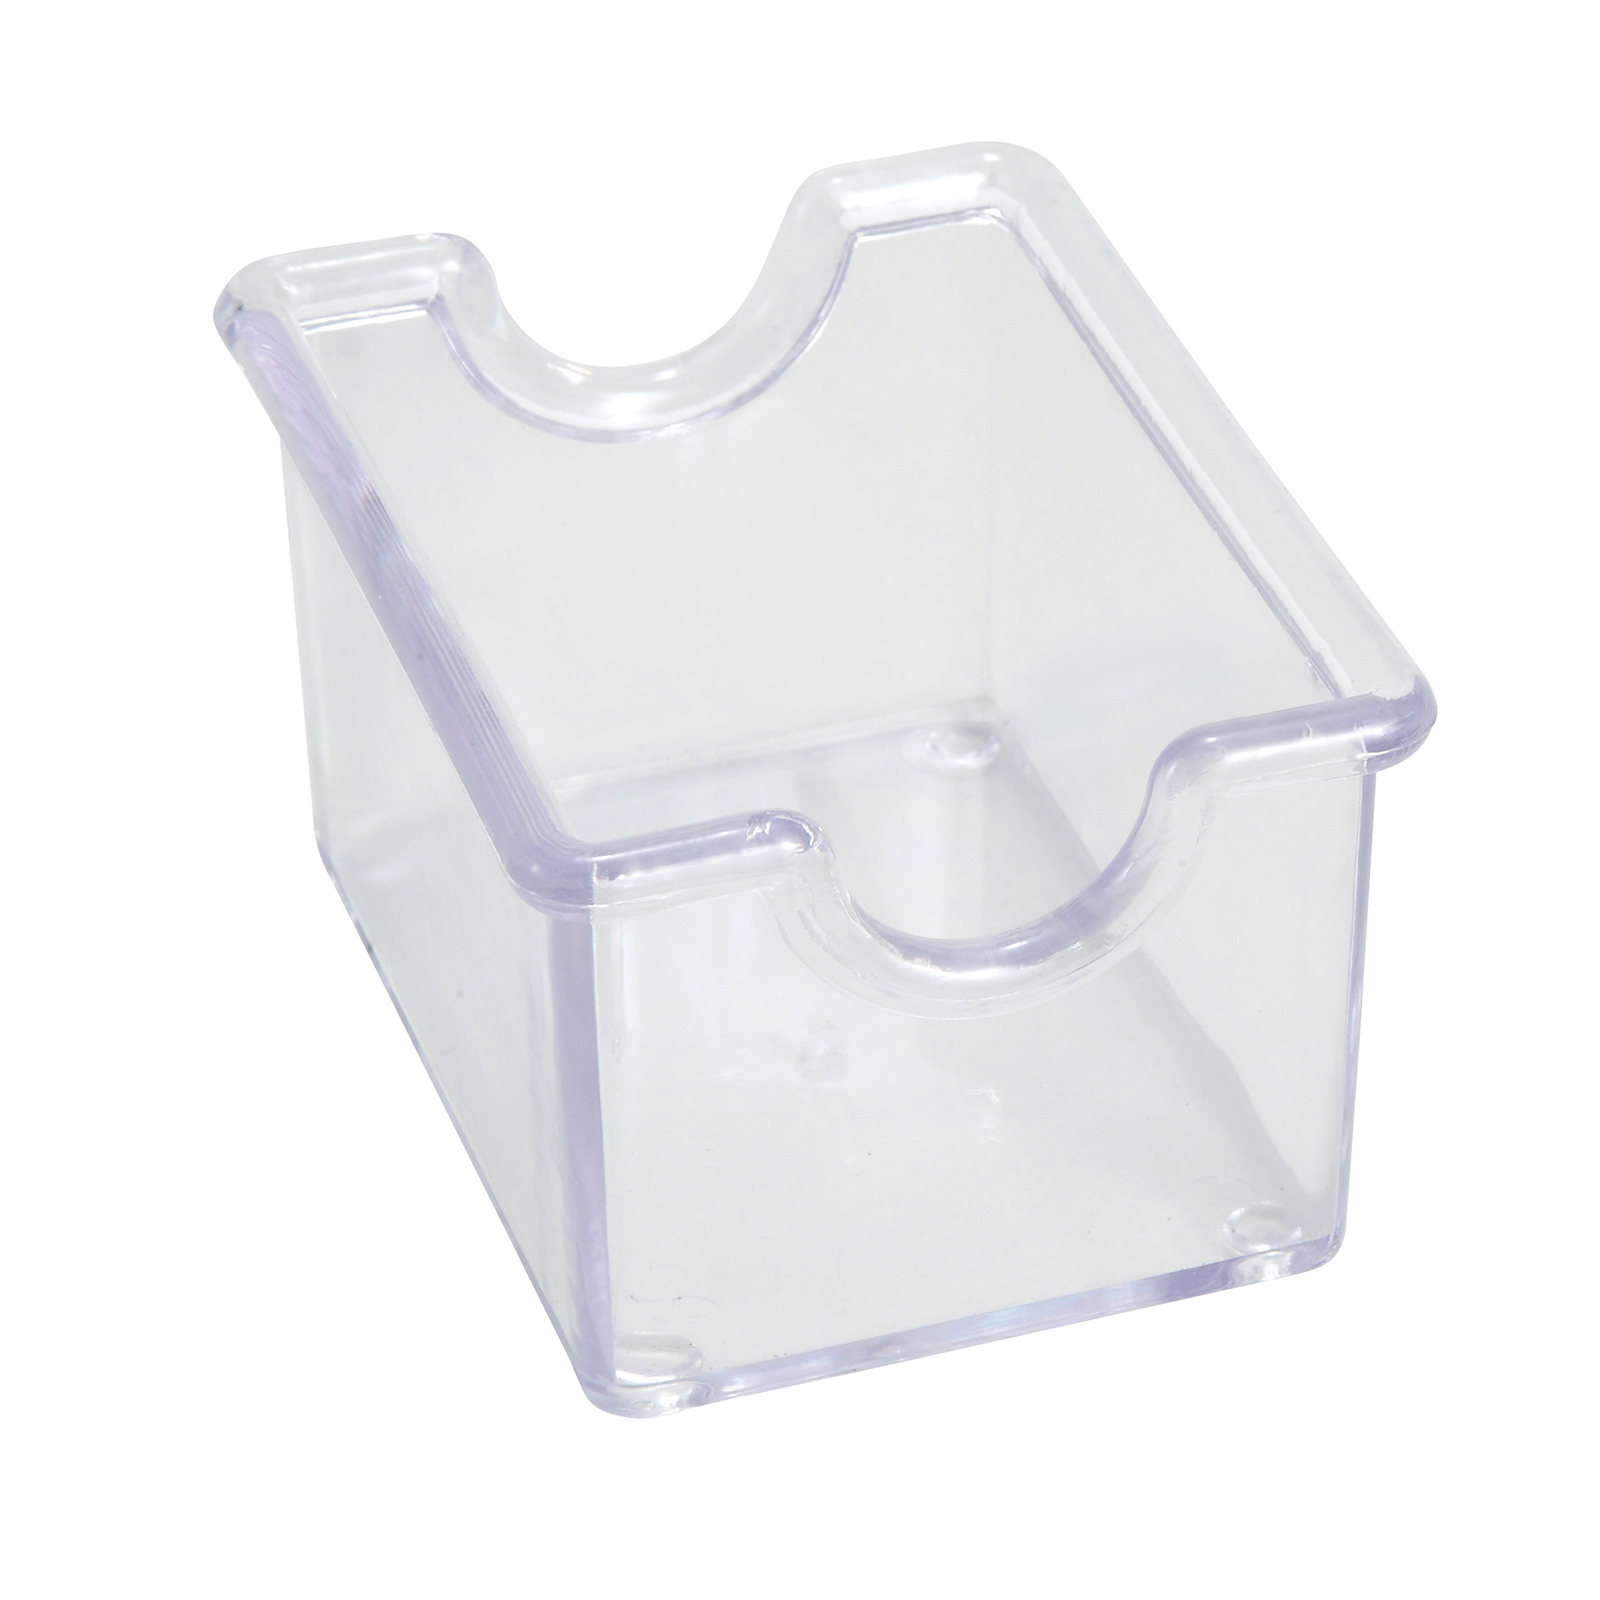 Winco PPH-1C sugar packet holder / caddy